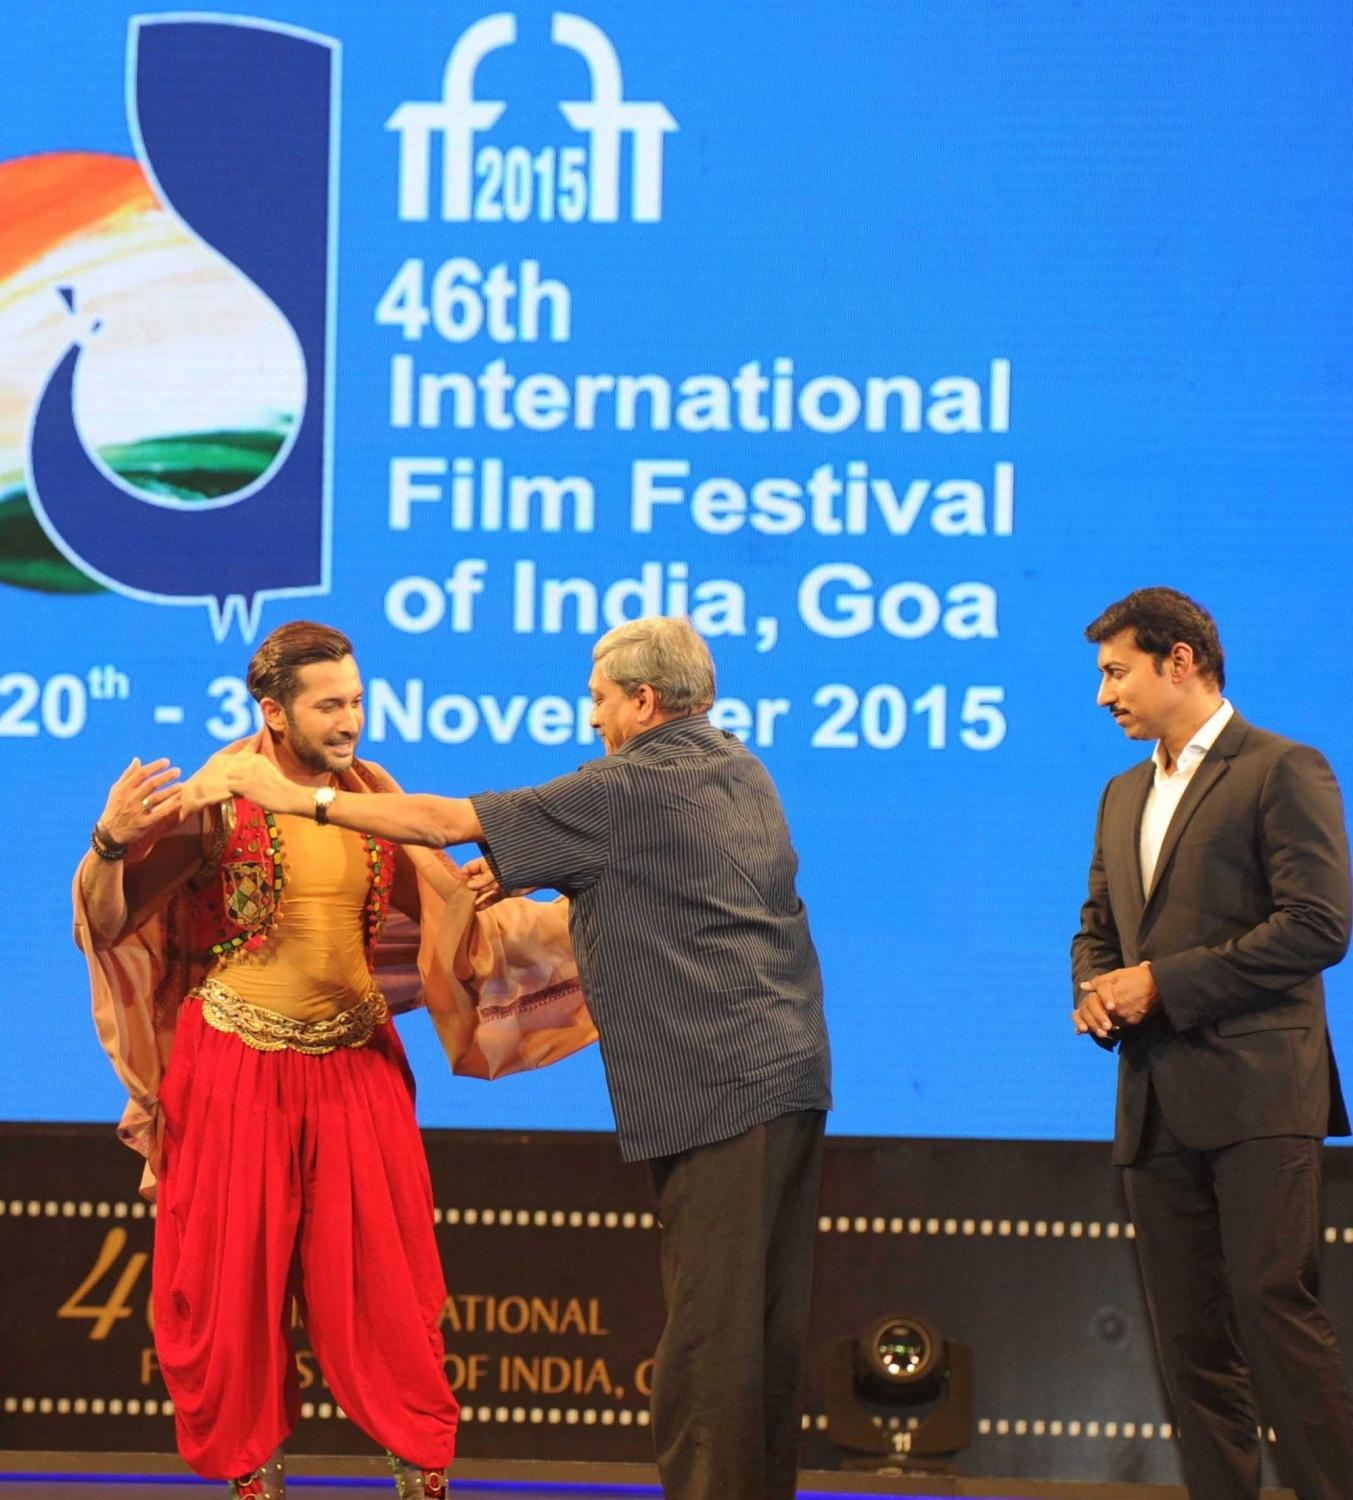 Union Minister for Defence Manohar Parrikar , Terence Lewis, Minister of State for Information and Broadcasting, Col. Rajyavardhan Singh Rathore.